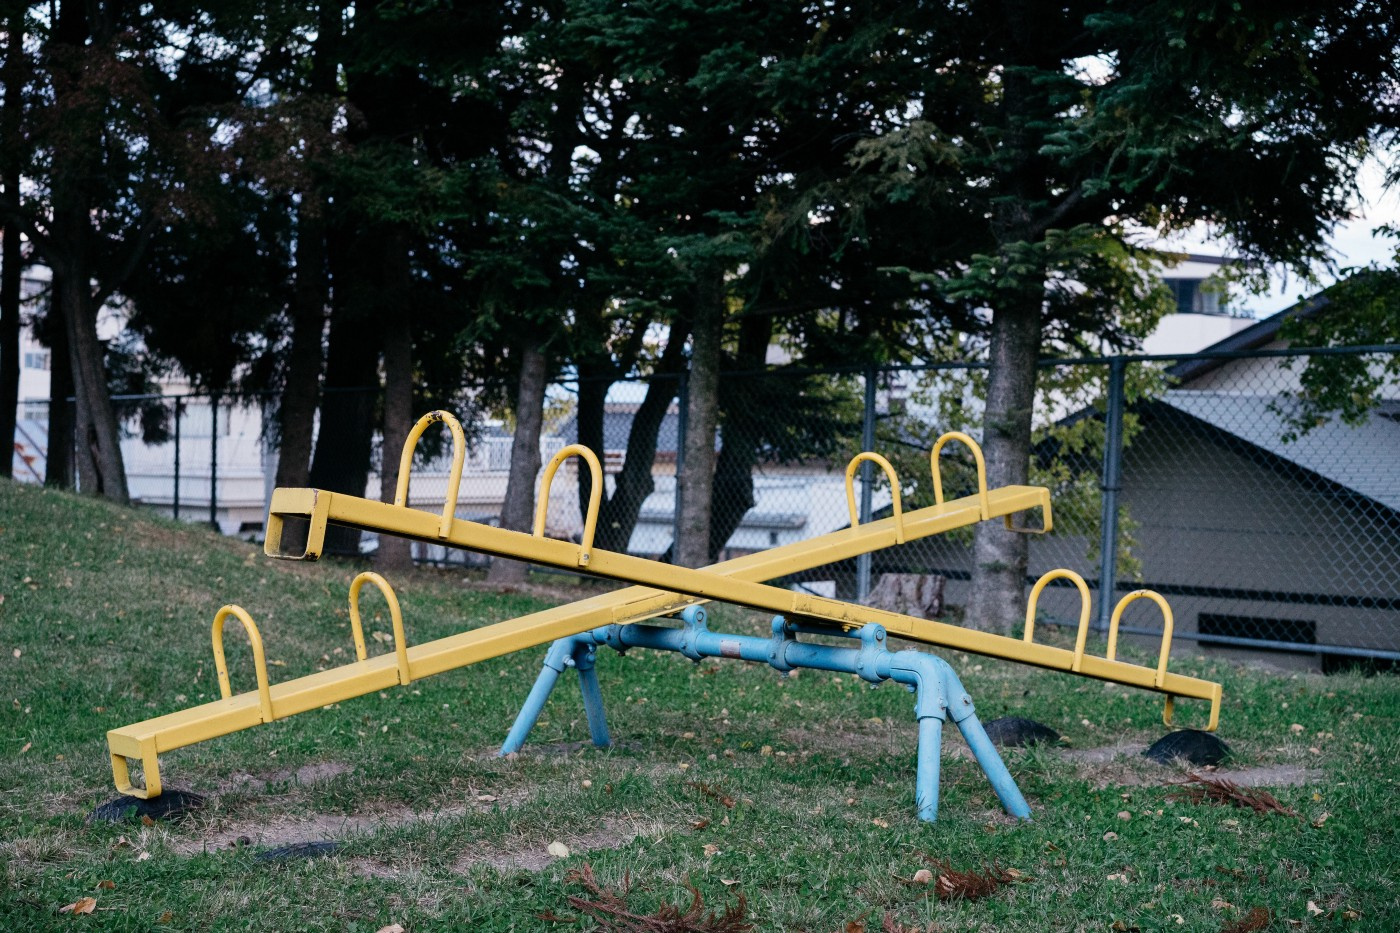 Two yellow metal seesaws on a powder blue base in a park